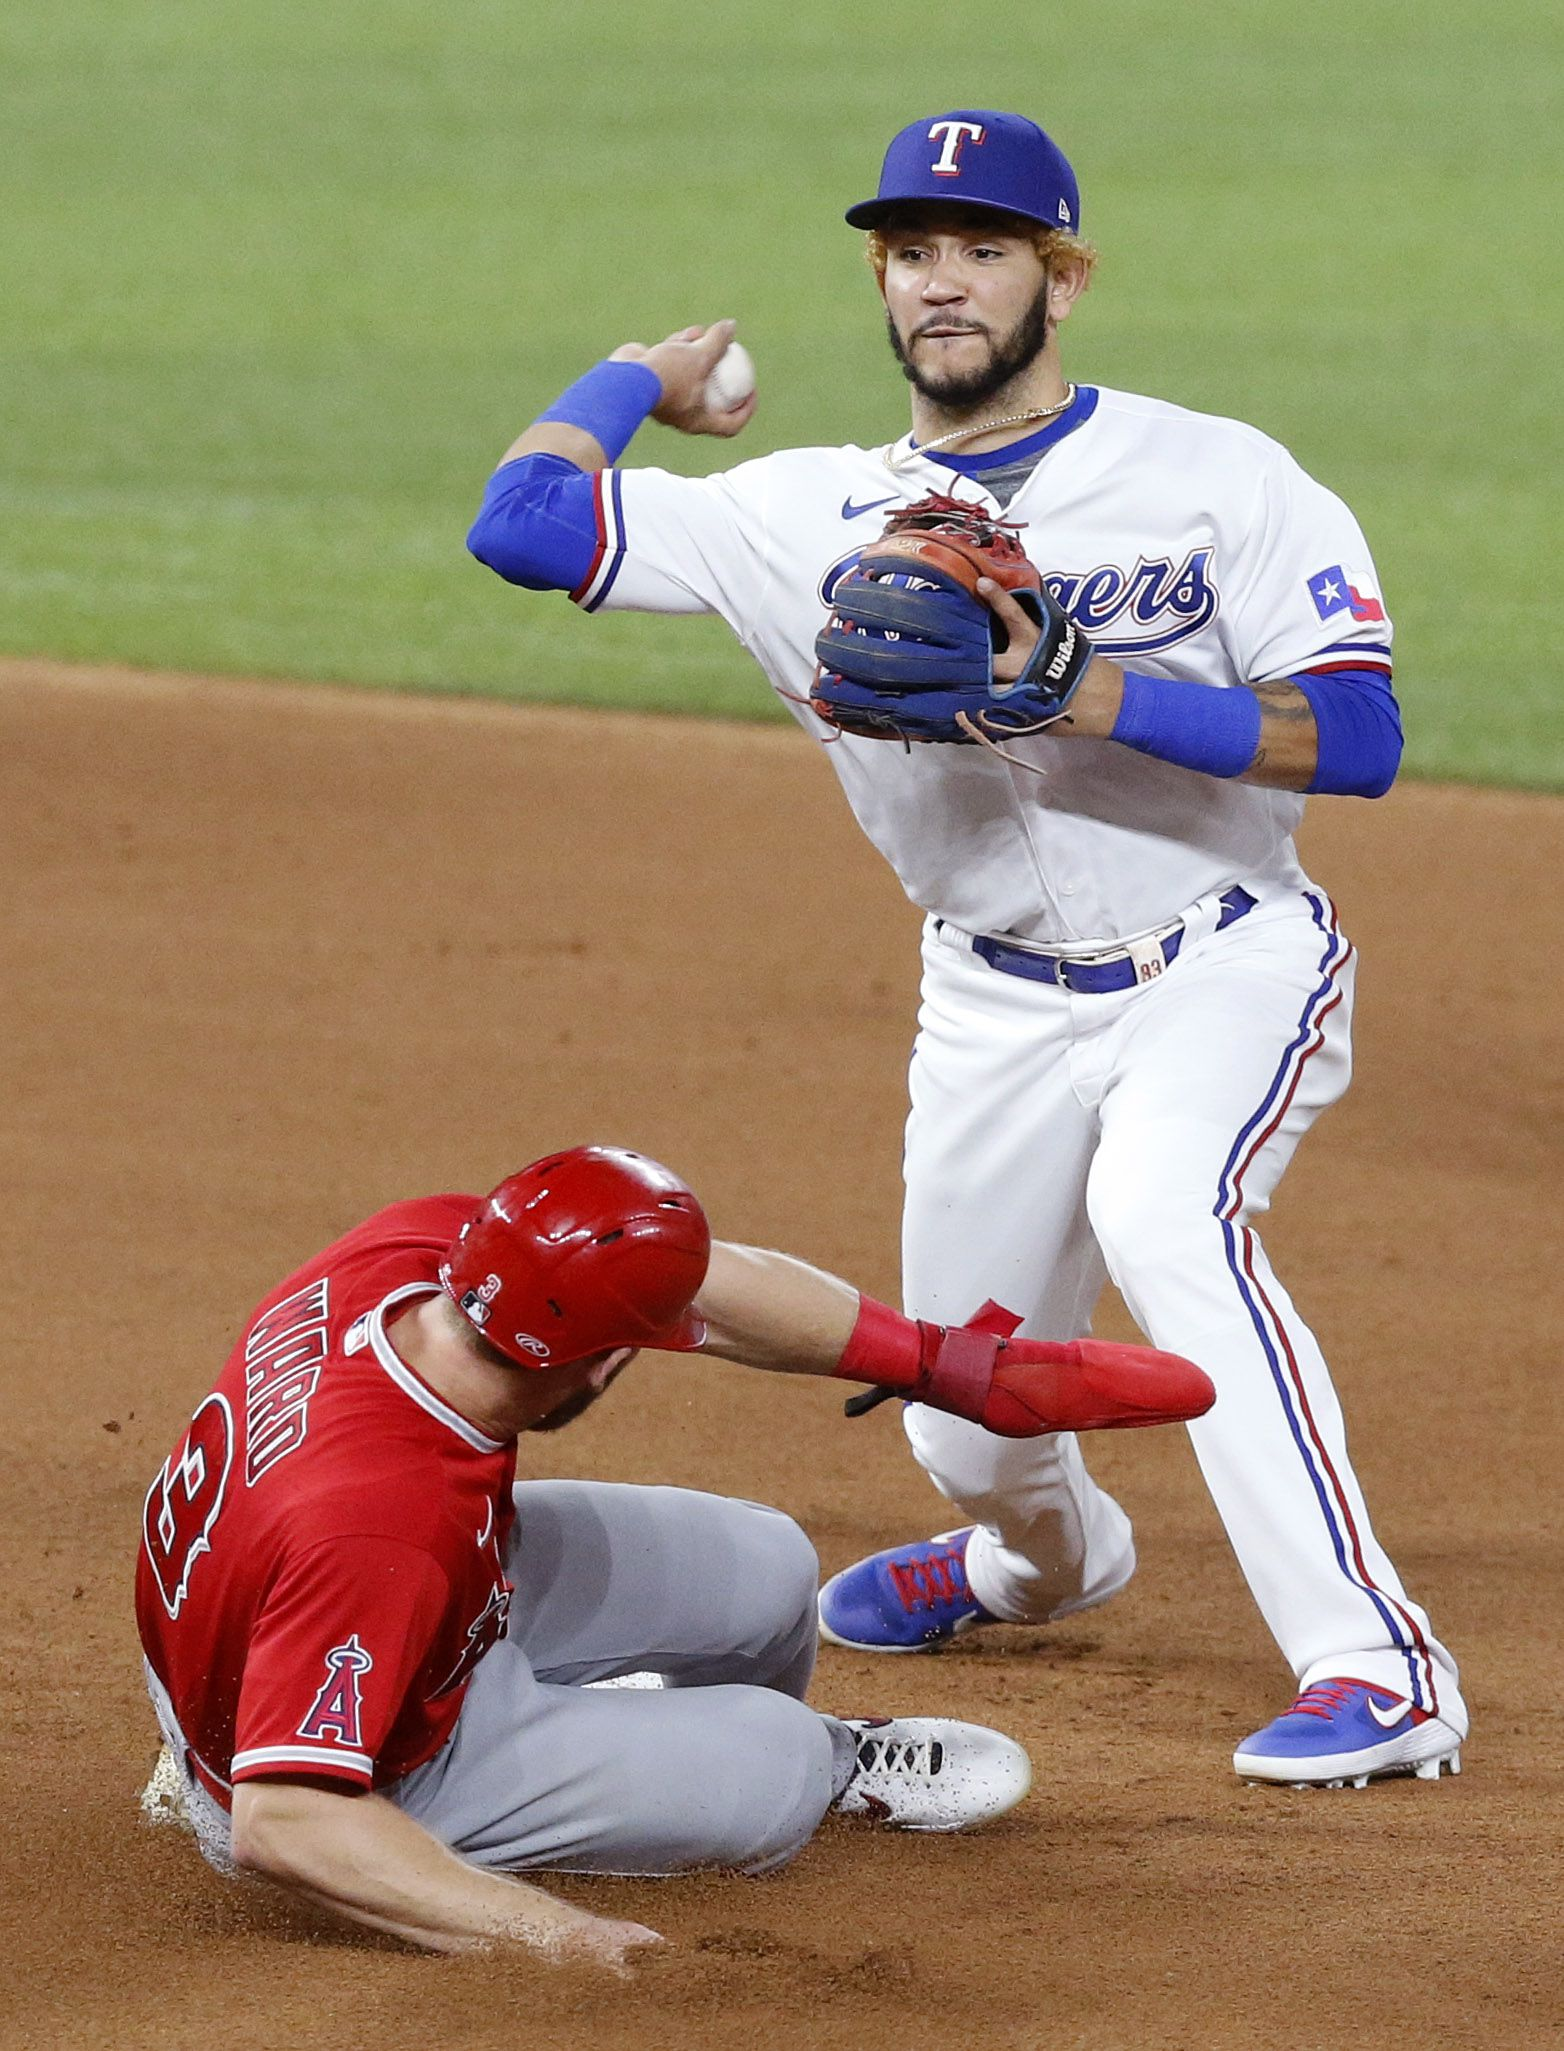 Texas Rangers second basemen Anderson Tejeda (71) turns the front end of a double play getting Los Angeles Angels Taylor Ward (3) during the fourth inning at Globe Life Field in Arlington, Texas, Tuesday, September 8, 2020. (Tom Fox/The Dallas Morning News)